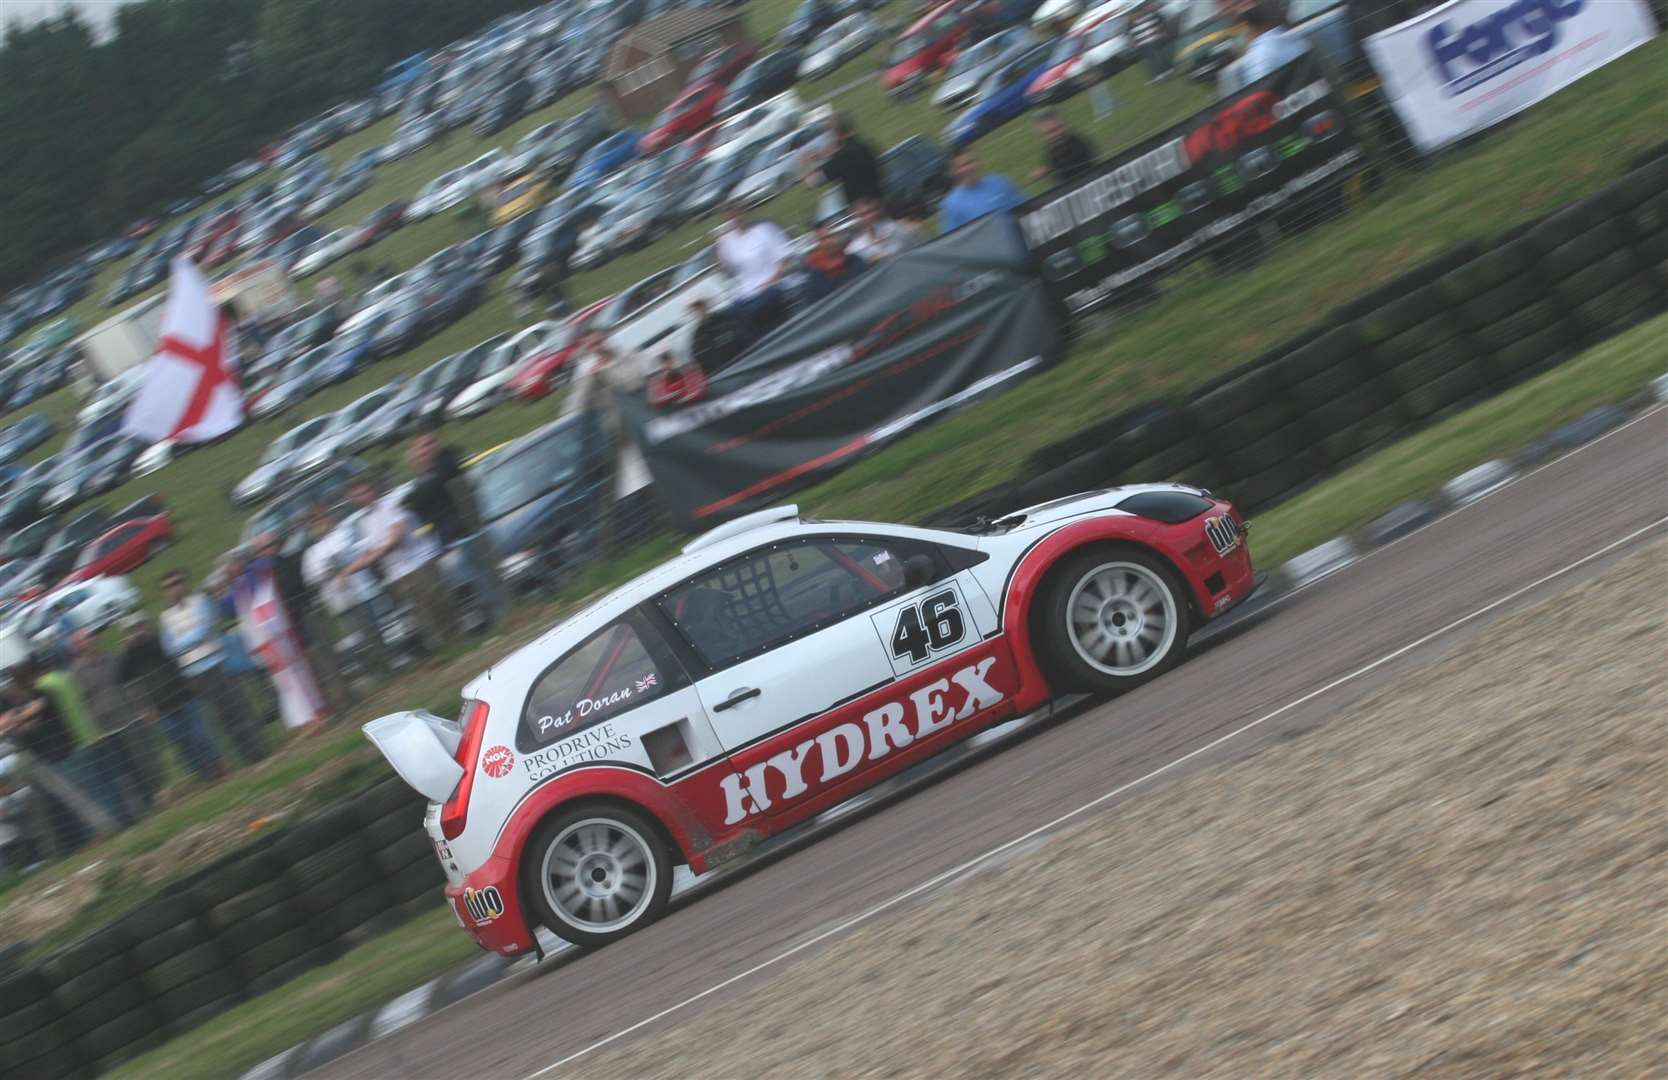 Pat Doran races his Ford Fiesta past part of the enormous crowd at Lydden on August Bank Holiday Monday in 2008. Picture: Kerry Dunlop